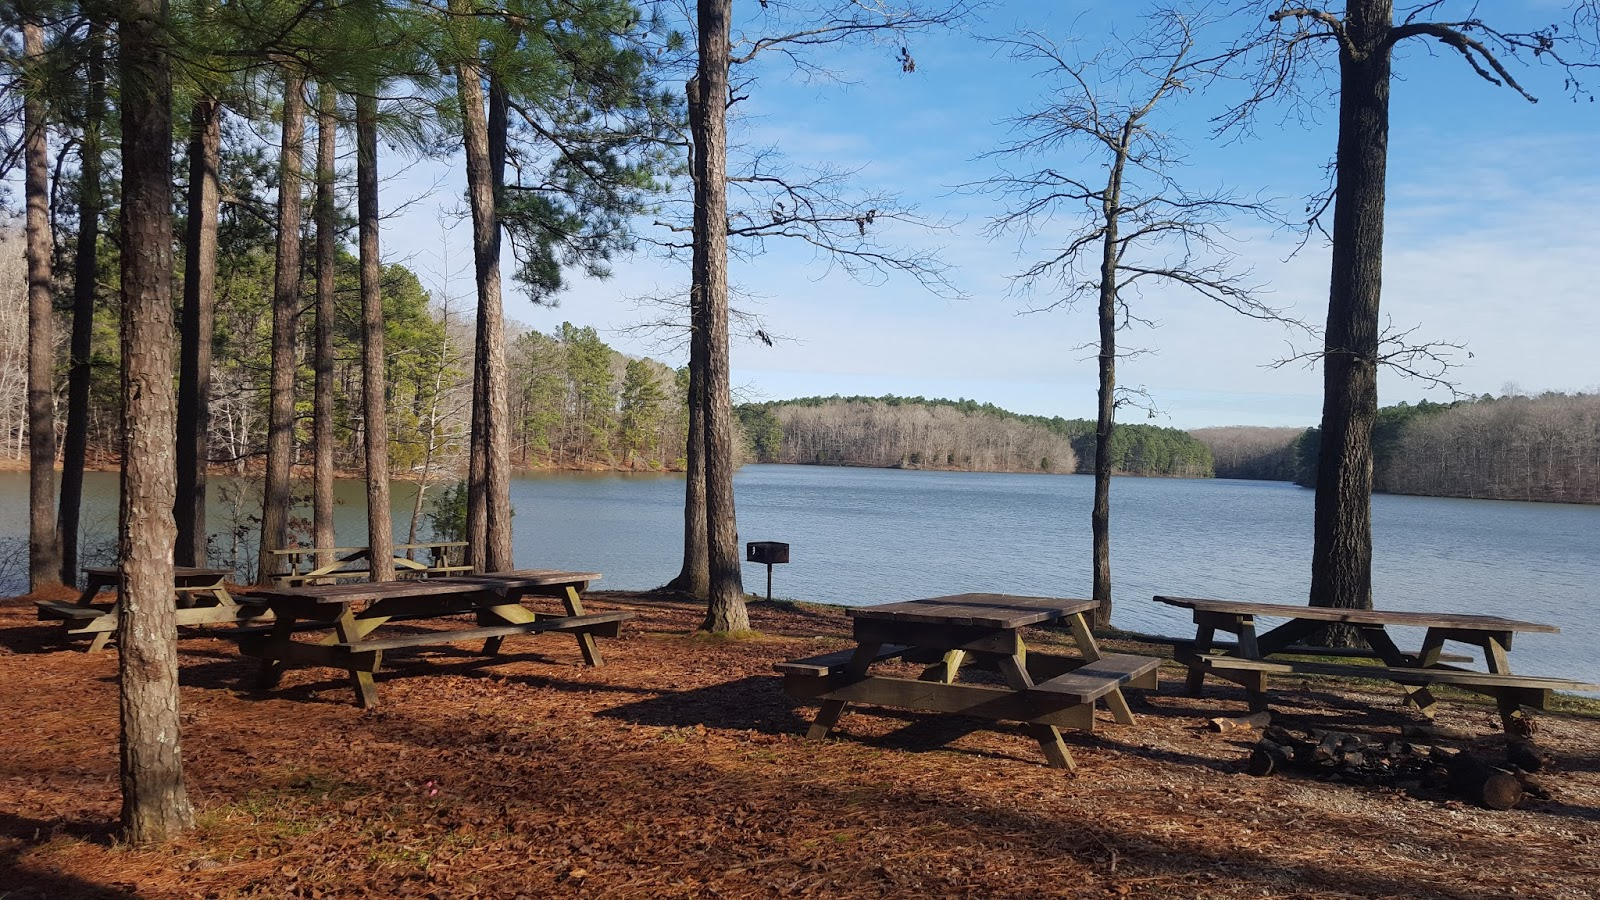 Divers And Sundry Natchez Trace State Park Trails